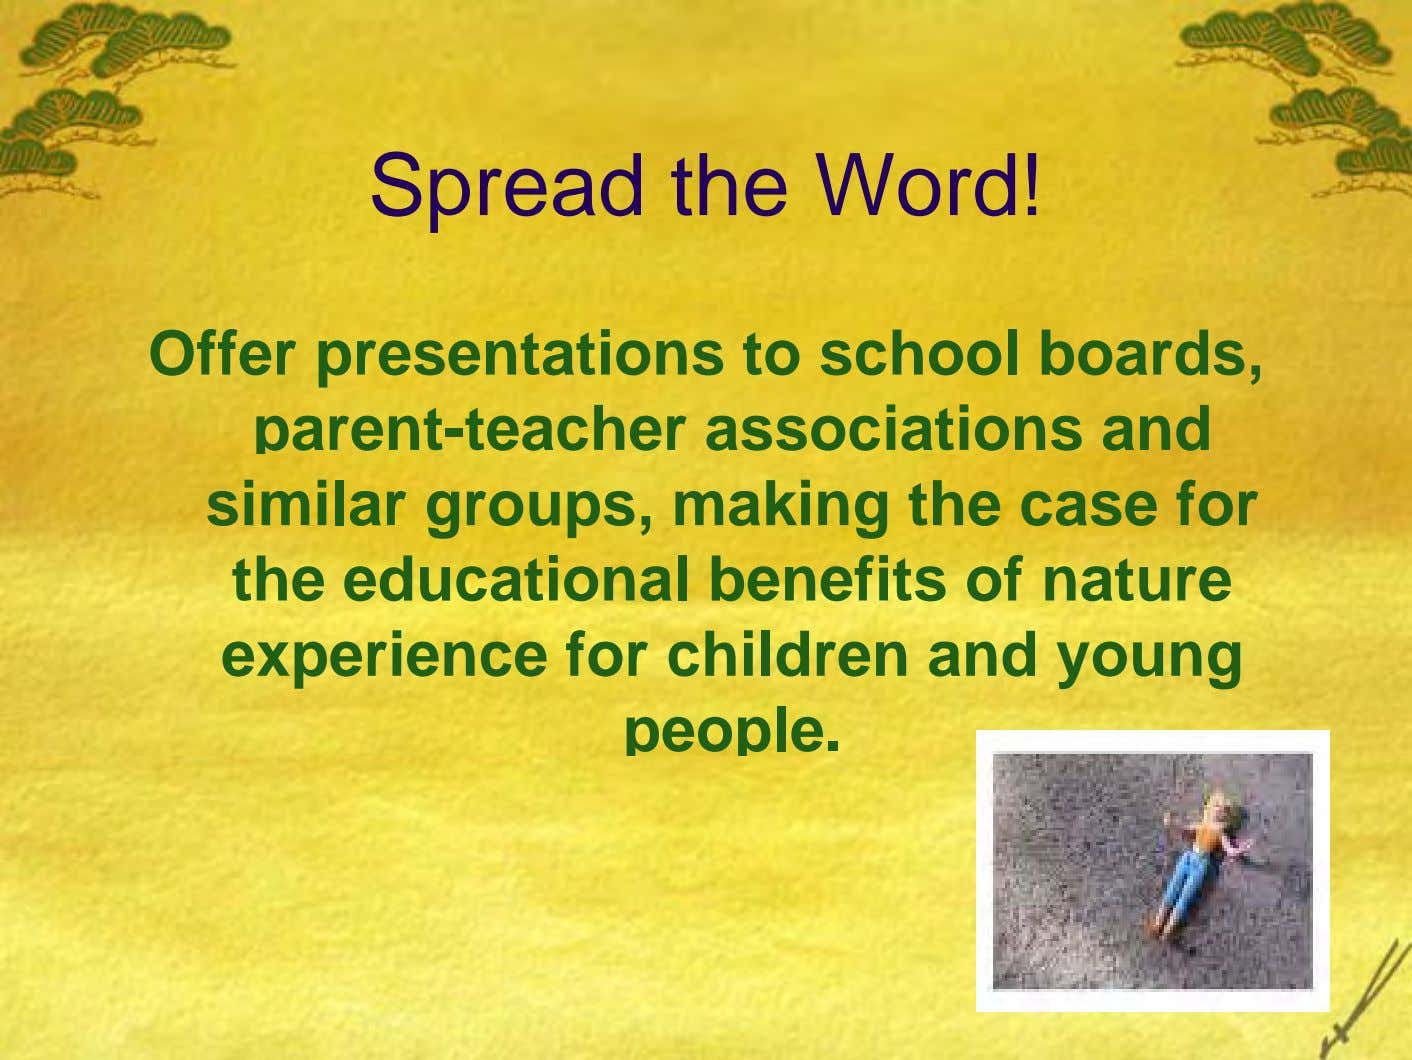 Spread the Word! Offer presentations to school boards, parent-teacher associations and similar groups, making the case